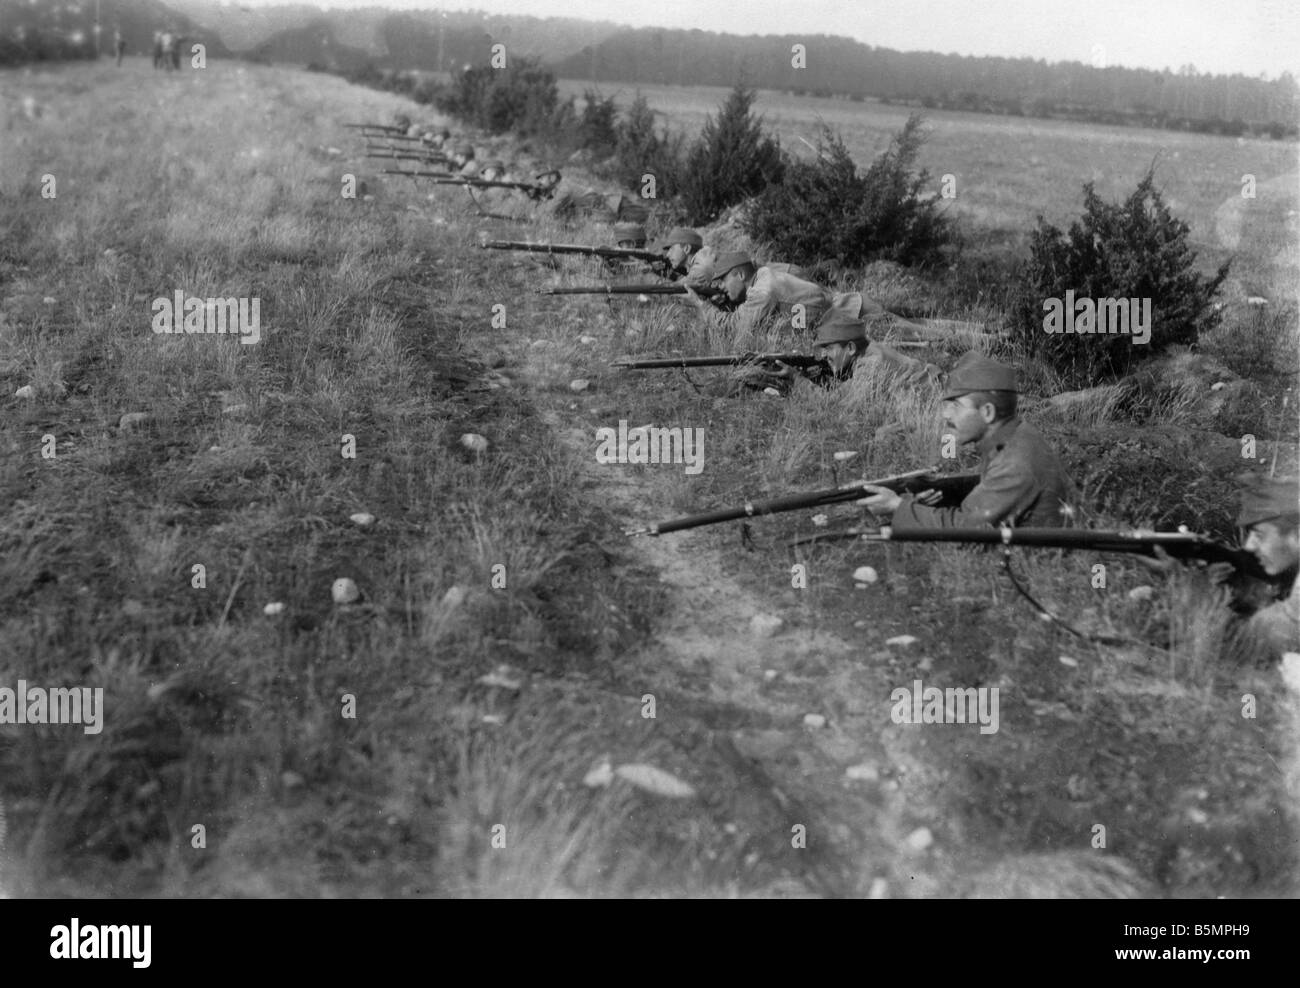 9 1916 0 0 A1 German Infantry in Trench Photo World War I German infantry troops in trench Photo 1916 Otto Haeckel - Stock Image